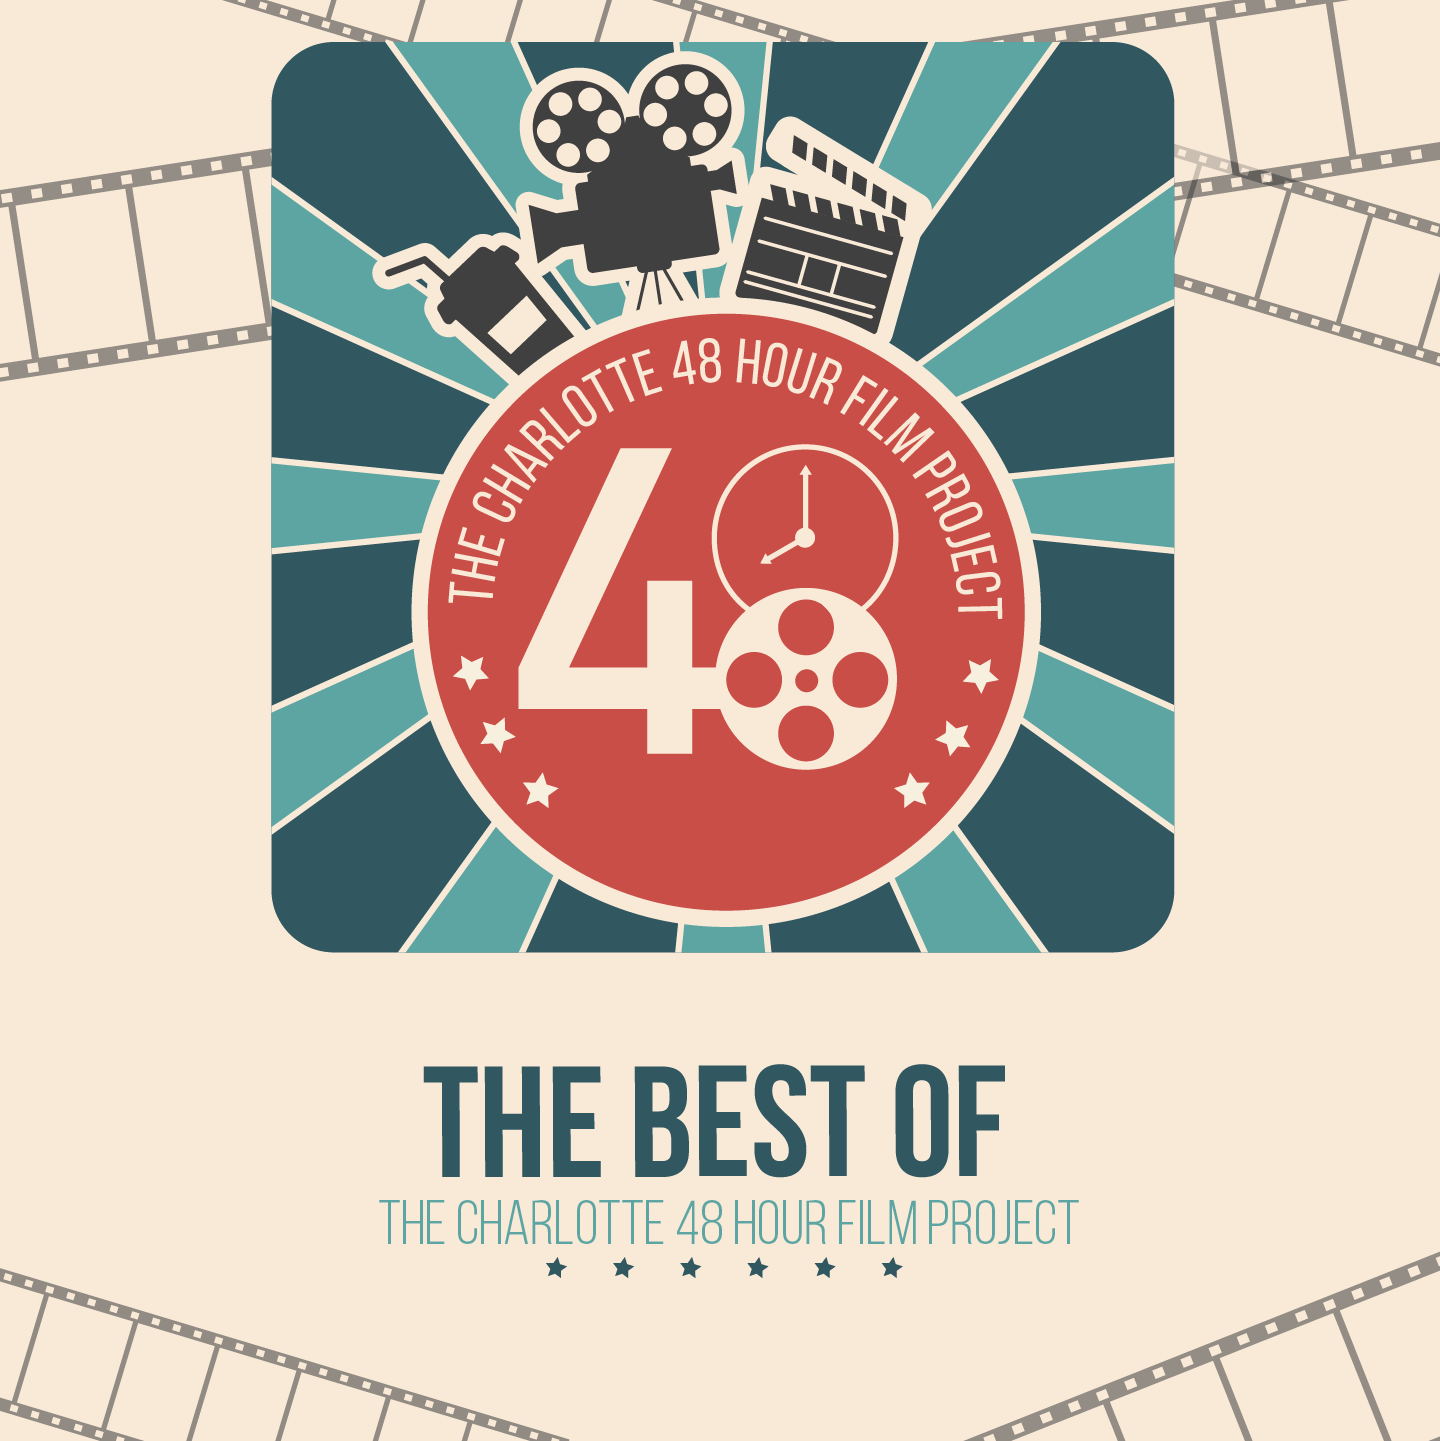 Best of The Charlotte 48 Hour Film Project